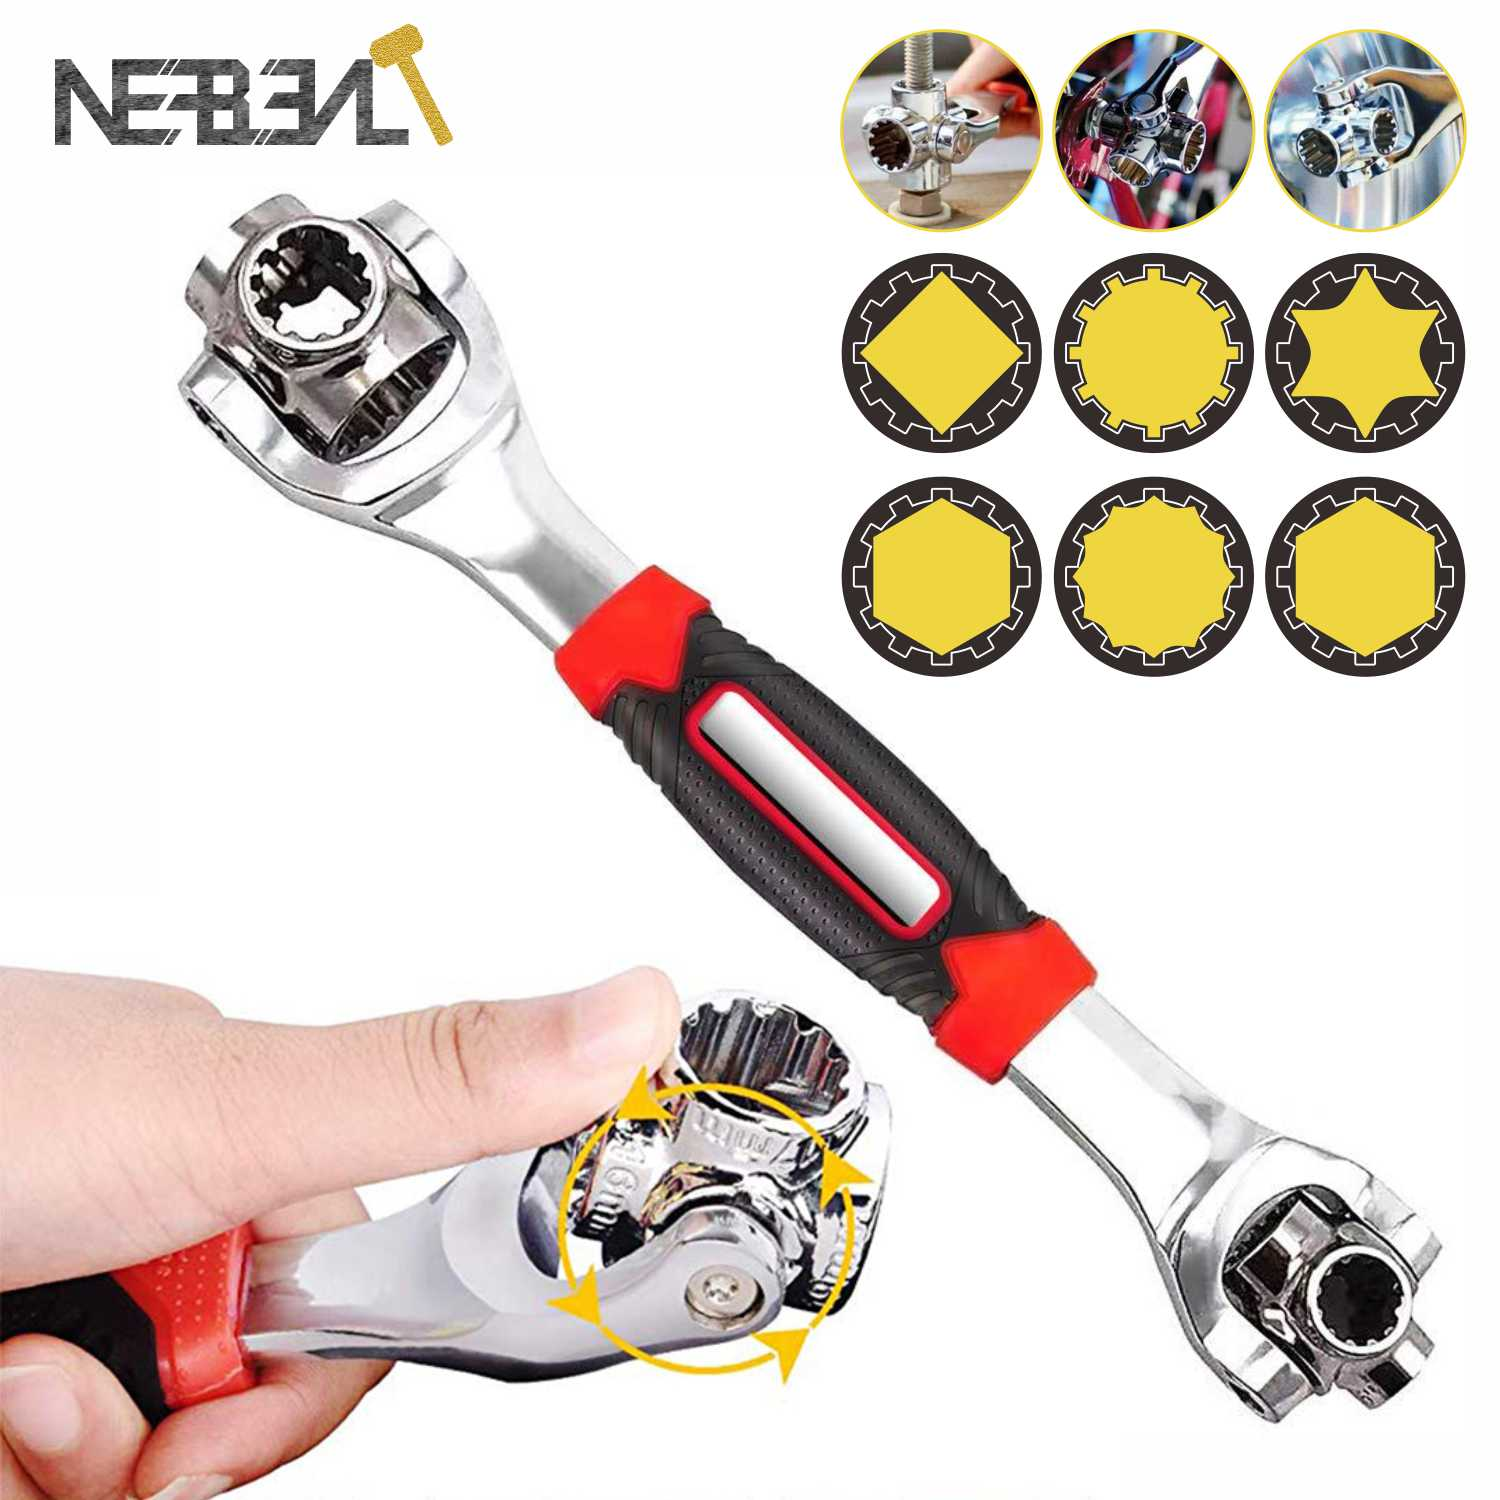 48-in-1 Tiger Wrench Hand Tools Socket Works with Spline Bolts 360 Degree 6-Point Universial Furniture Car Repair Spanner